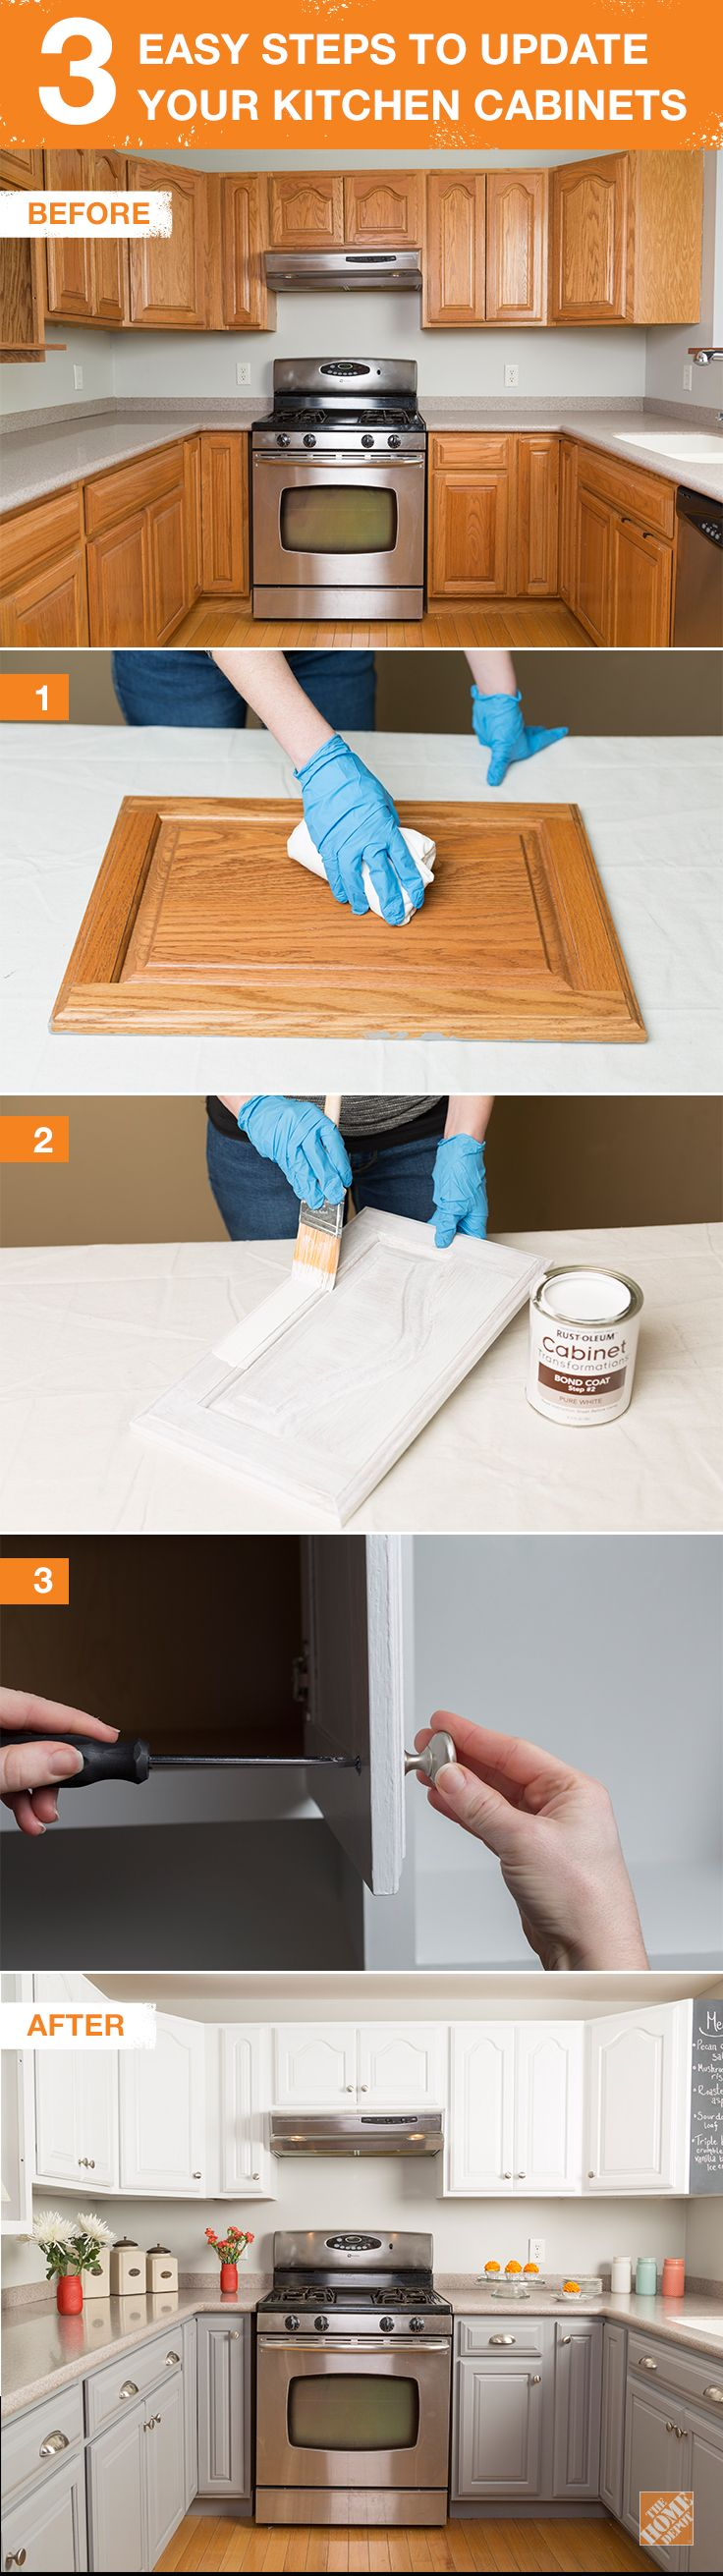 home depot kitchen remodel Get the Look of New Kitchen Cabinets the Easy Way